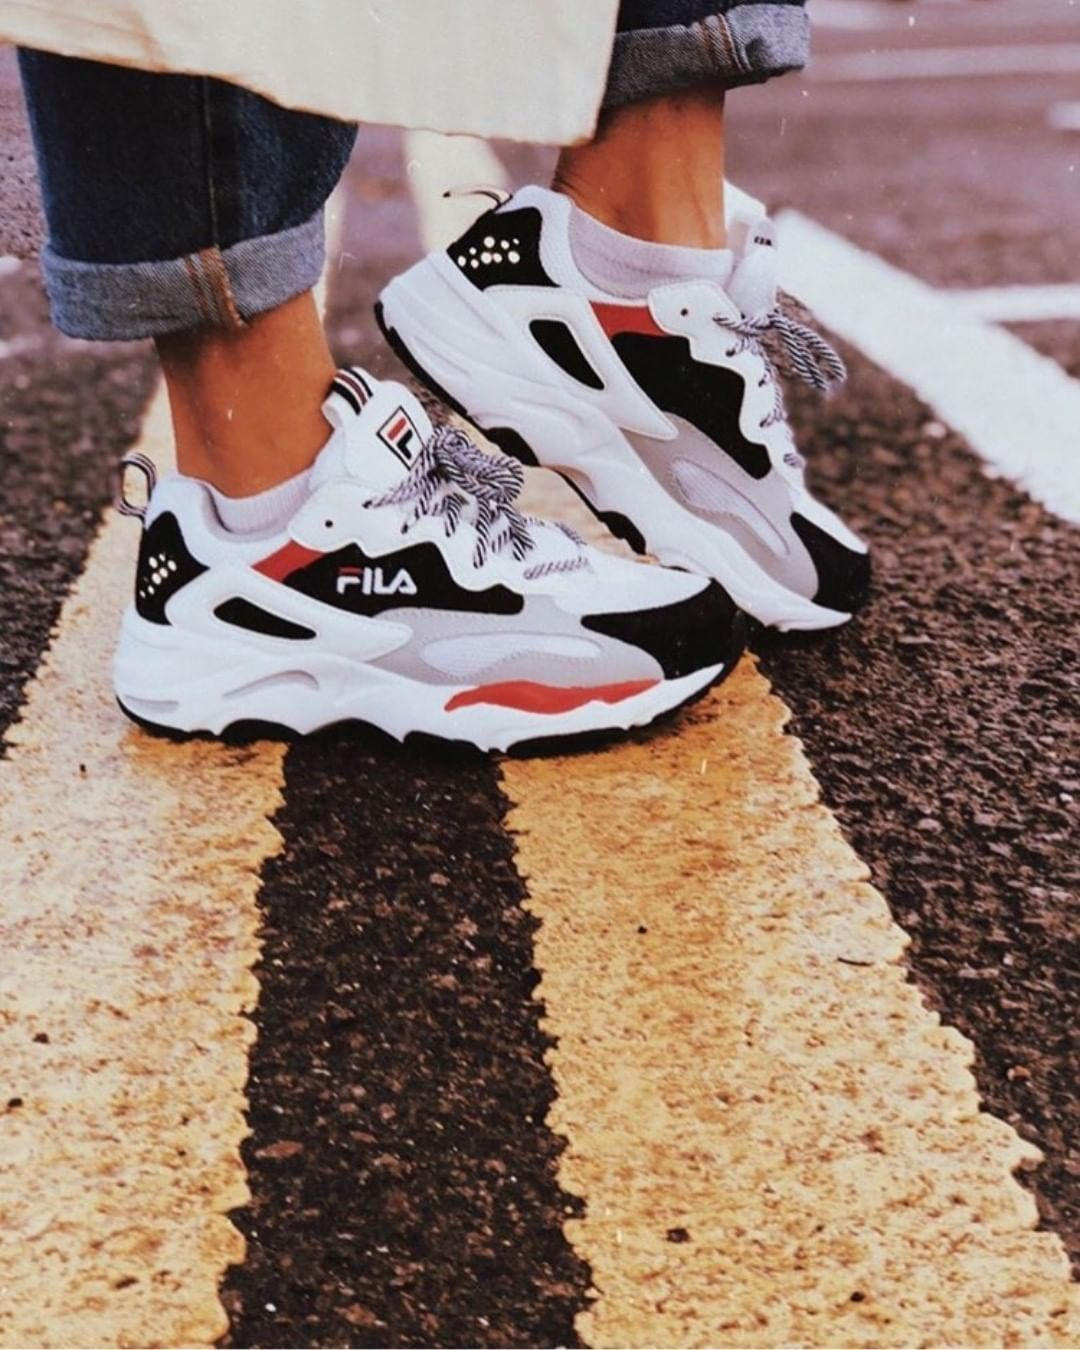 "9de72f95757 FILA UK on Instagram: ""Ray Tracer 👌"" 